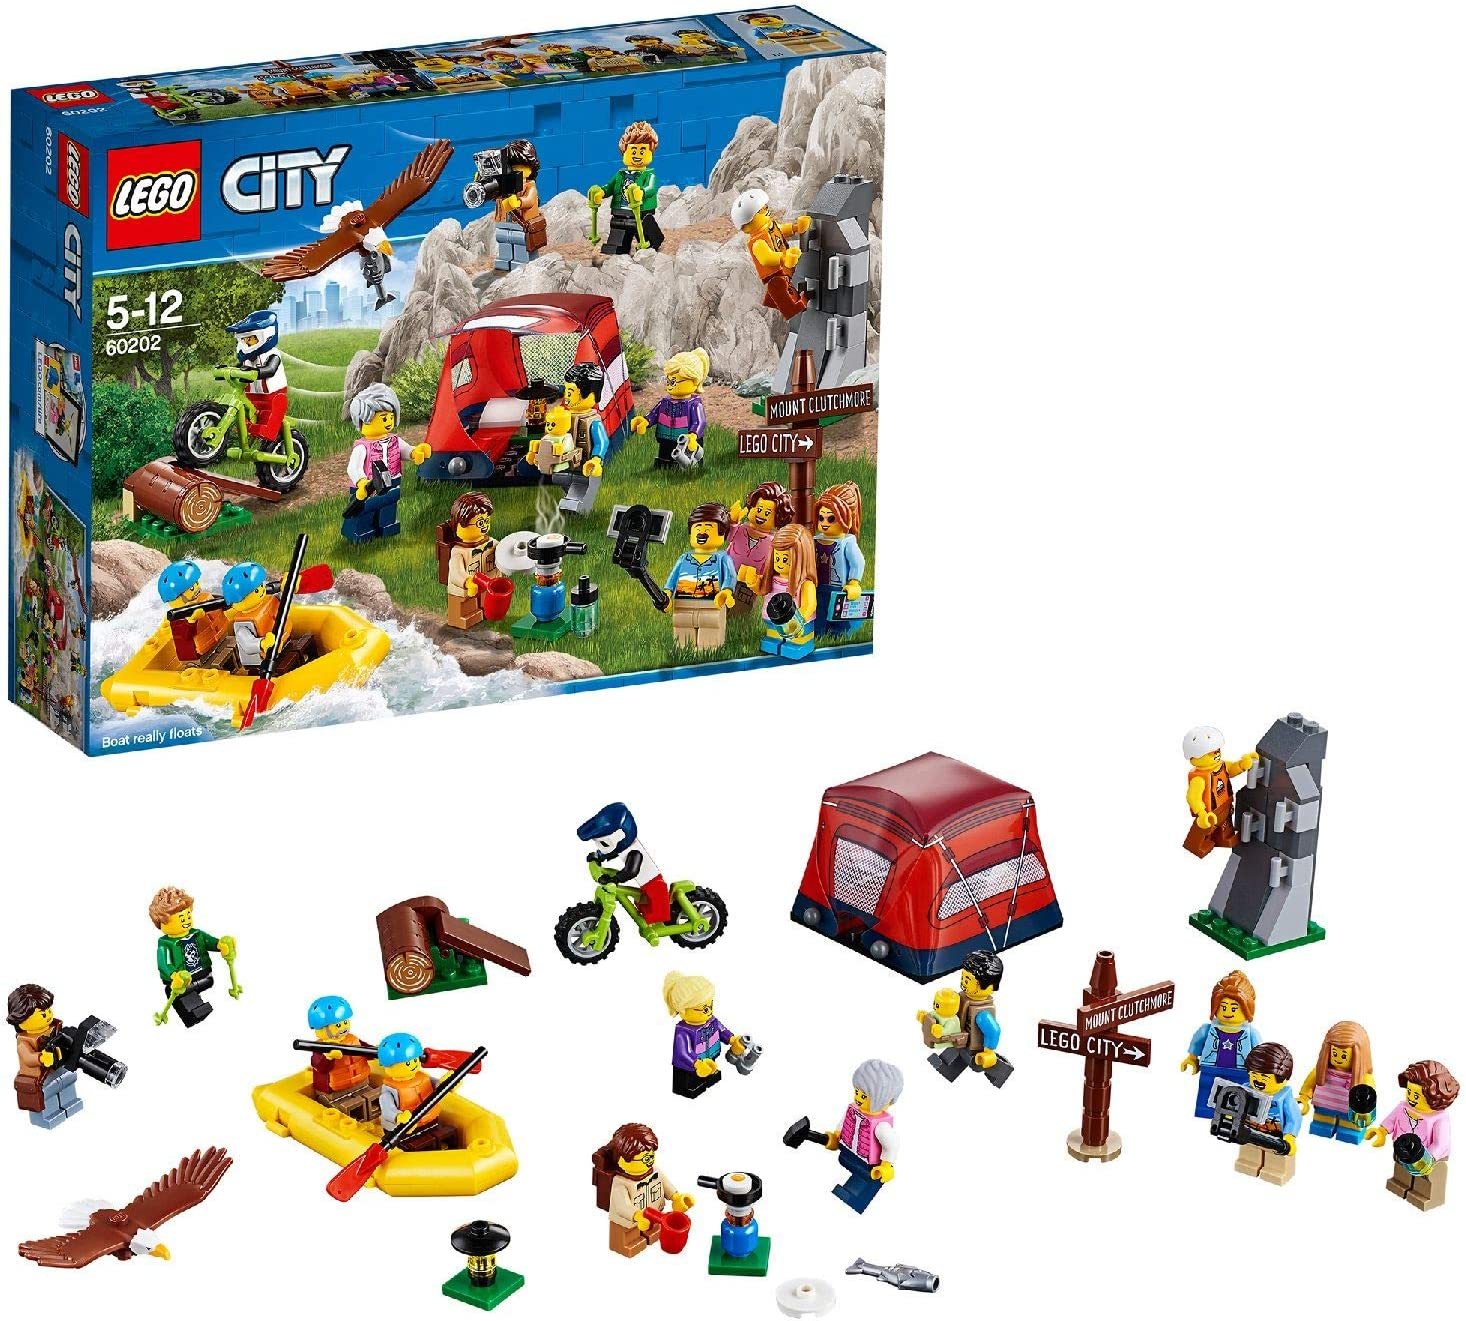 LEGO City Town People Pack - Outdoor Adventures Building Set